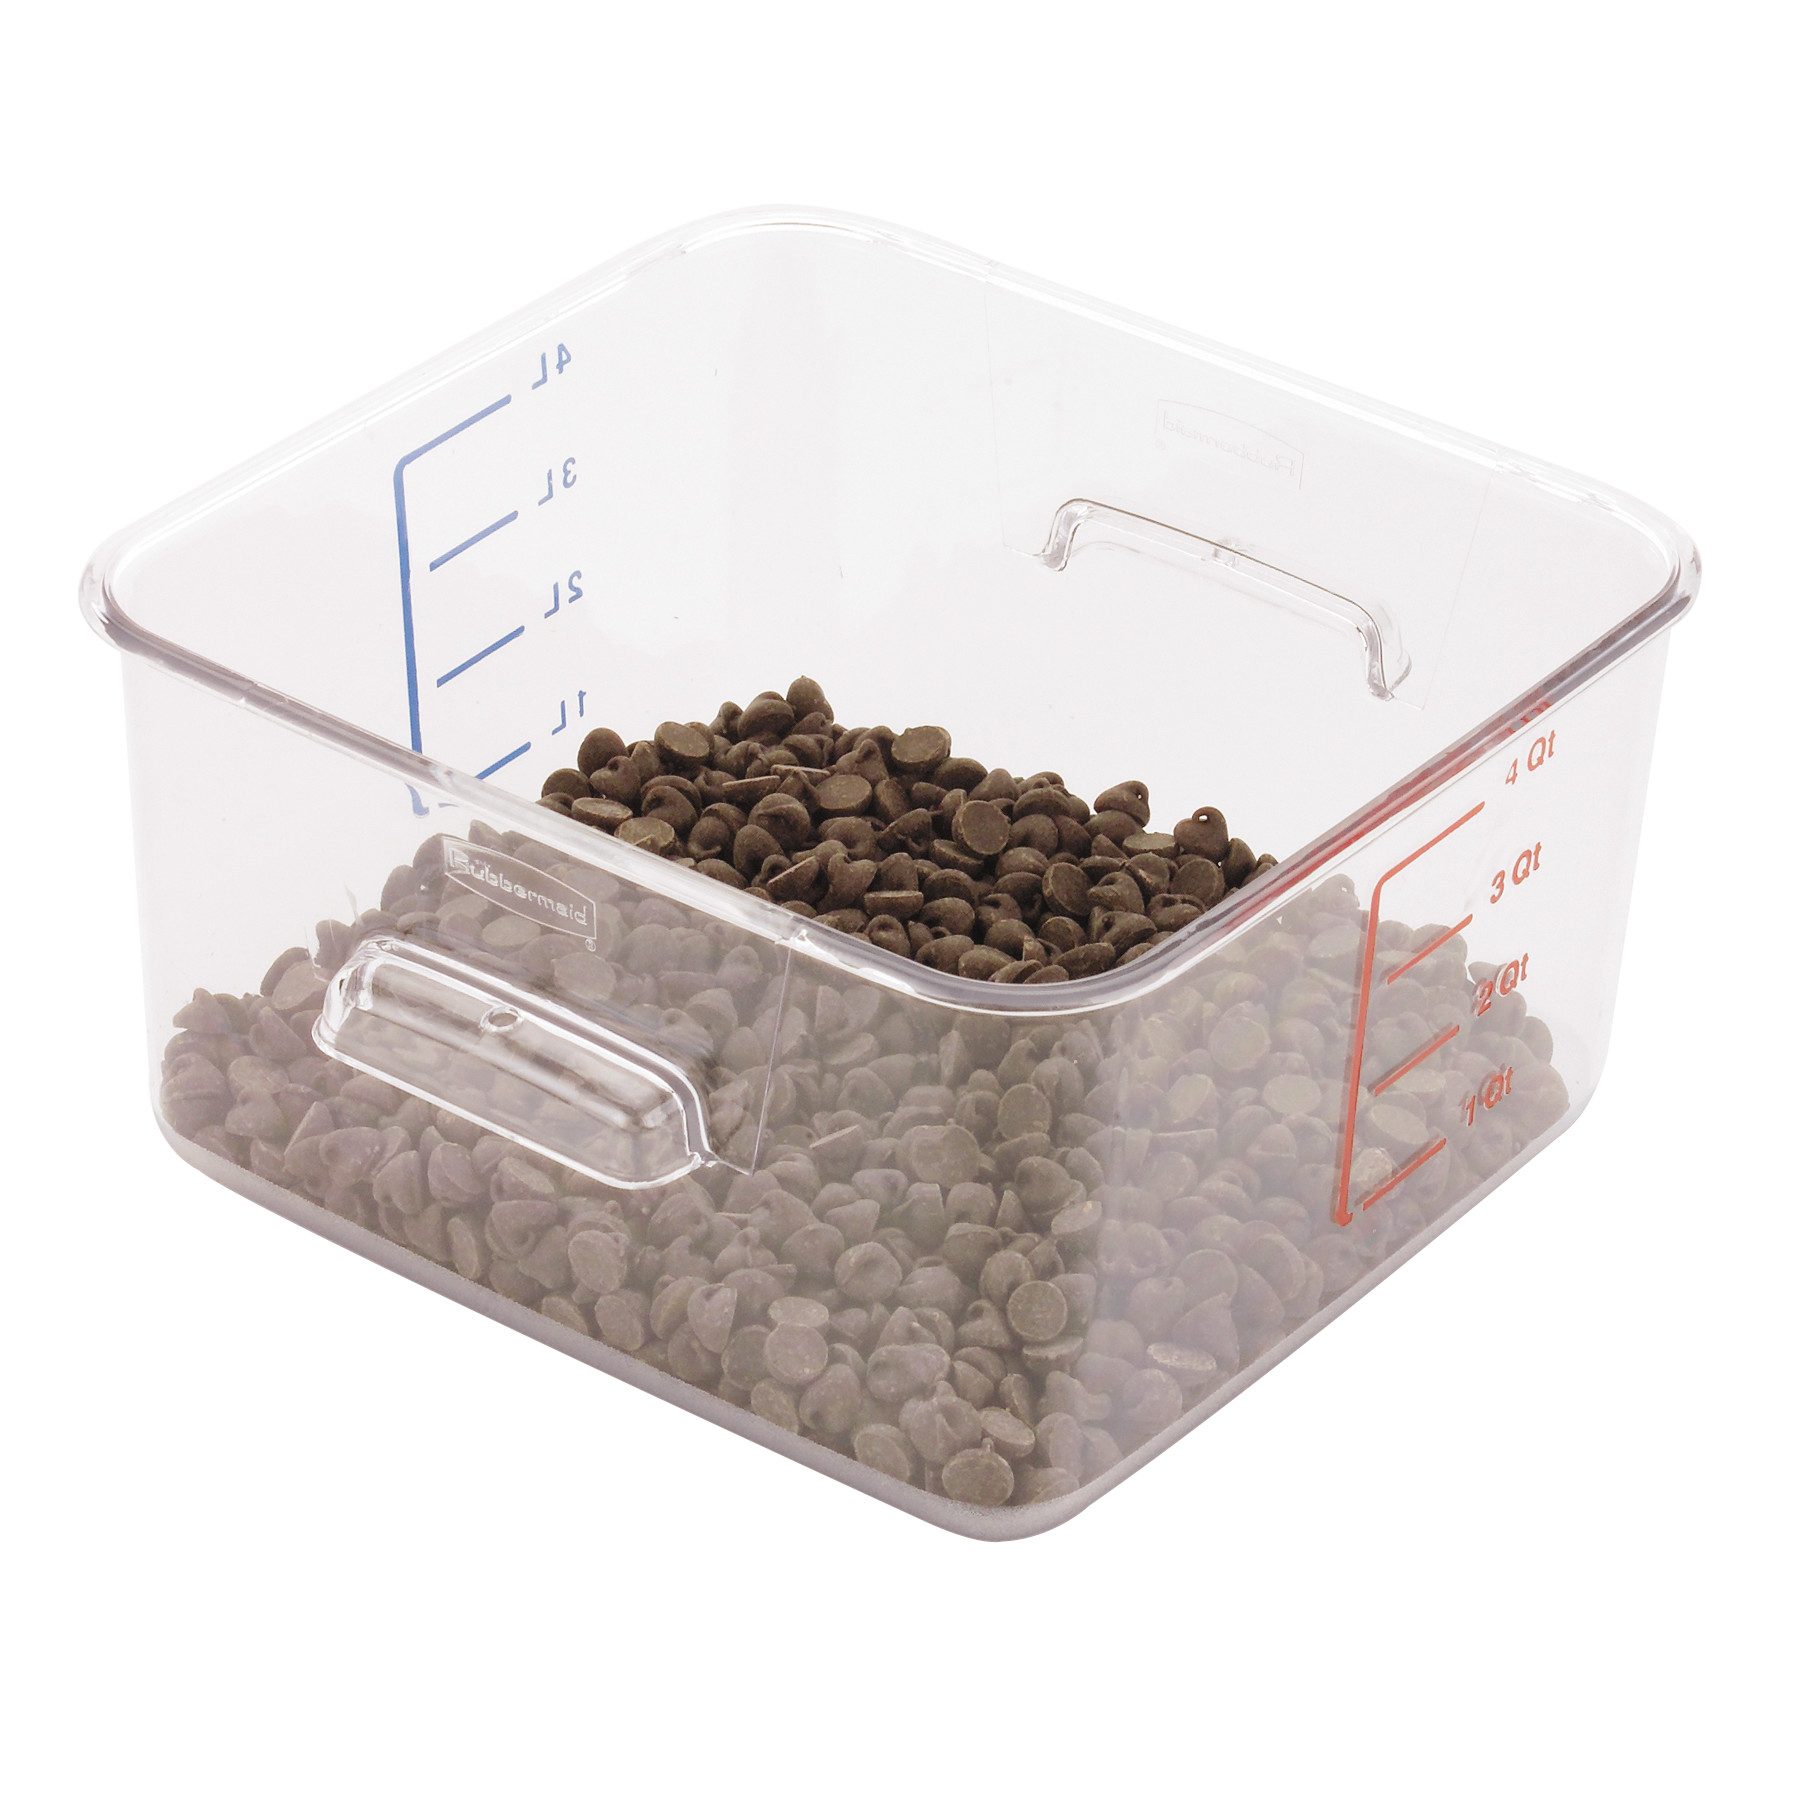 Rubbermaid Commercial SpaceSaver Square Containers, 4qt, 8 4/5w x 8 3/4d x 4 3/4h, Clear -RCP6304CLE